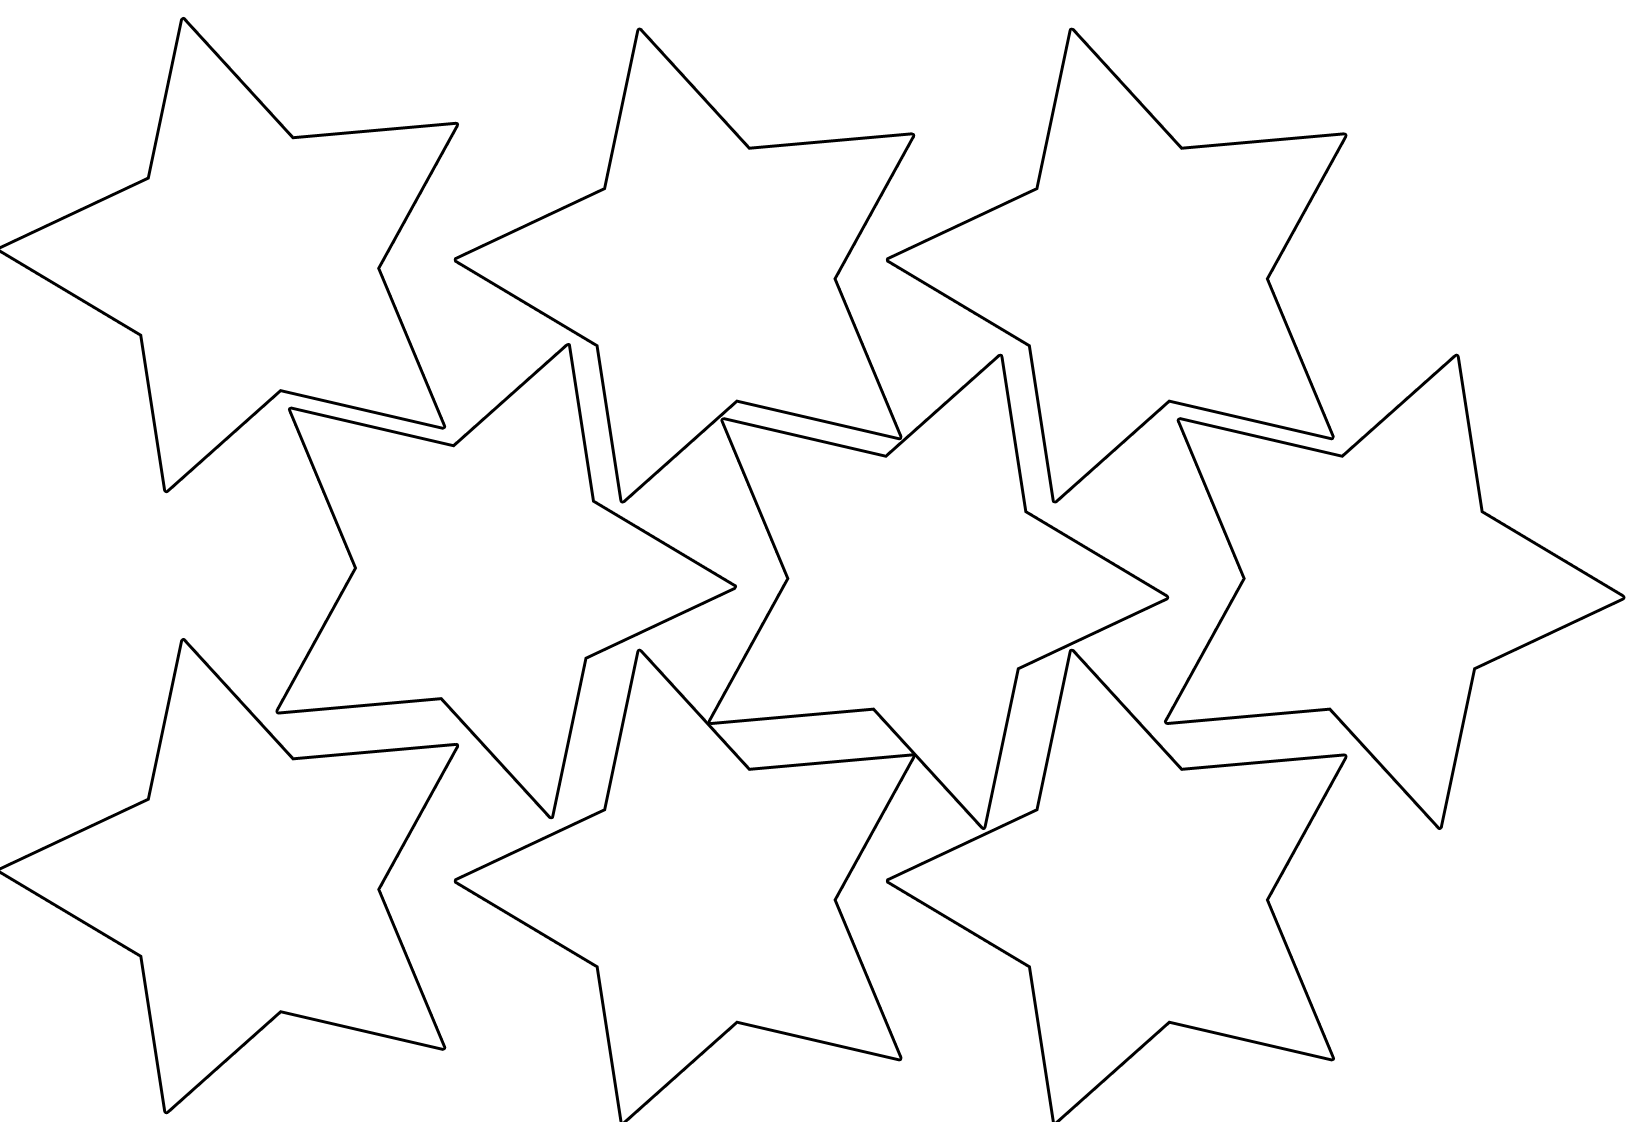 printable pictures of stars stars of printable pictures stars of printable pictures